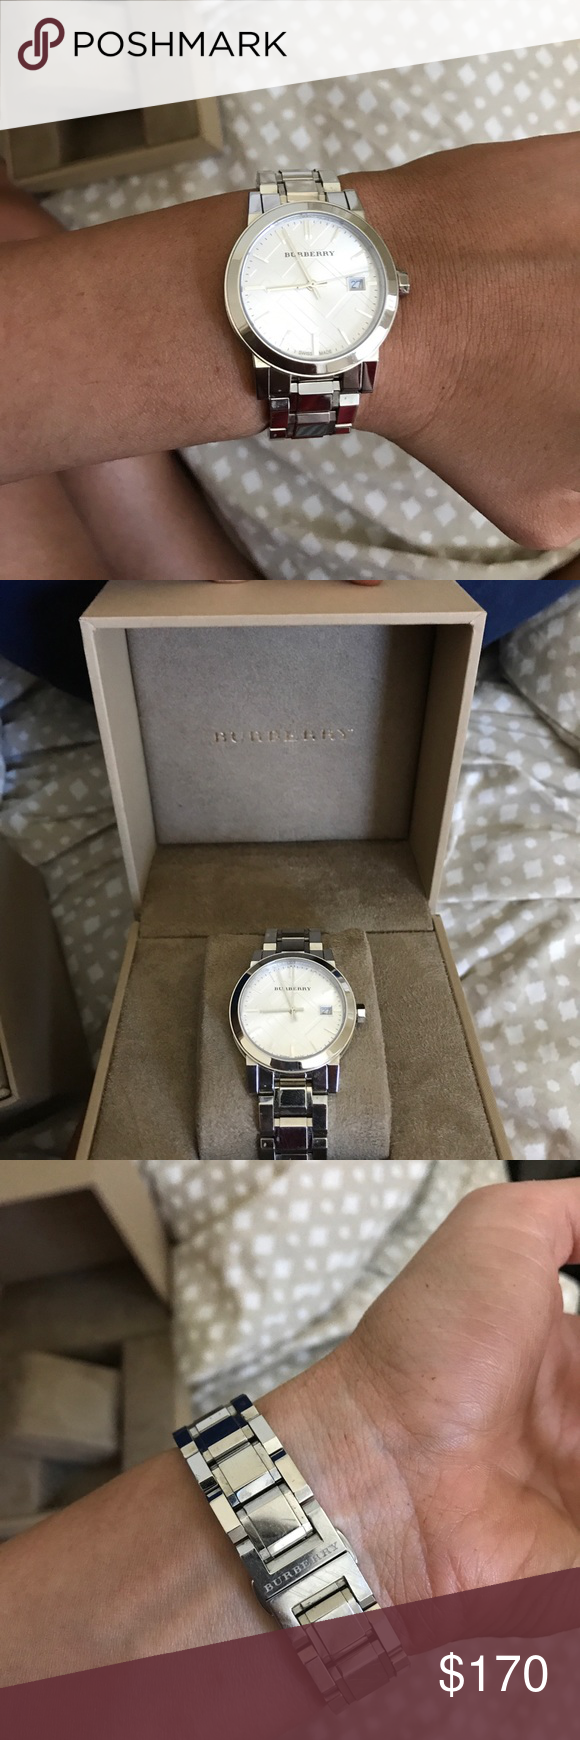 f93607f4bd5 Burberry BU1900 watch Small men's or larger women's. Used good condition.  Bought in Jan 2017 from nordstrom. Priced to sell, no extra links Burberry  ...